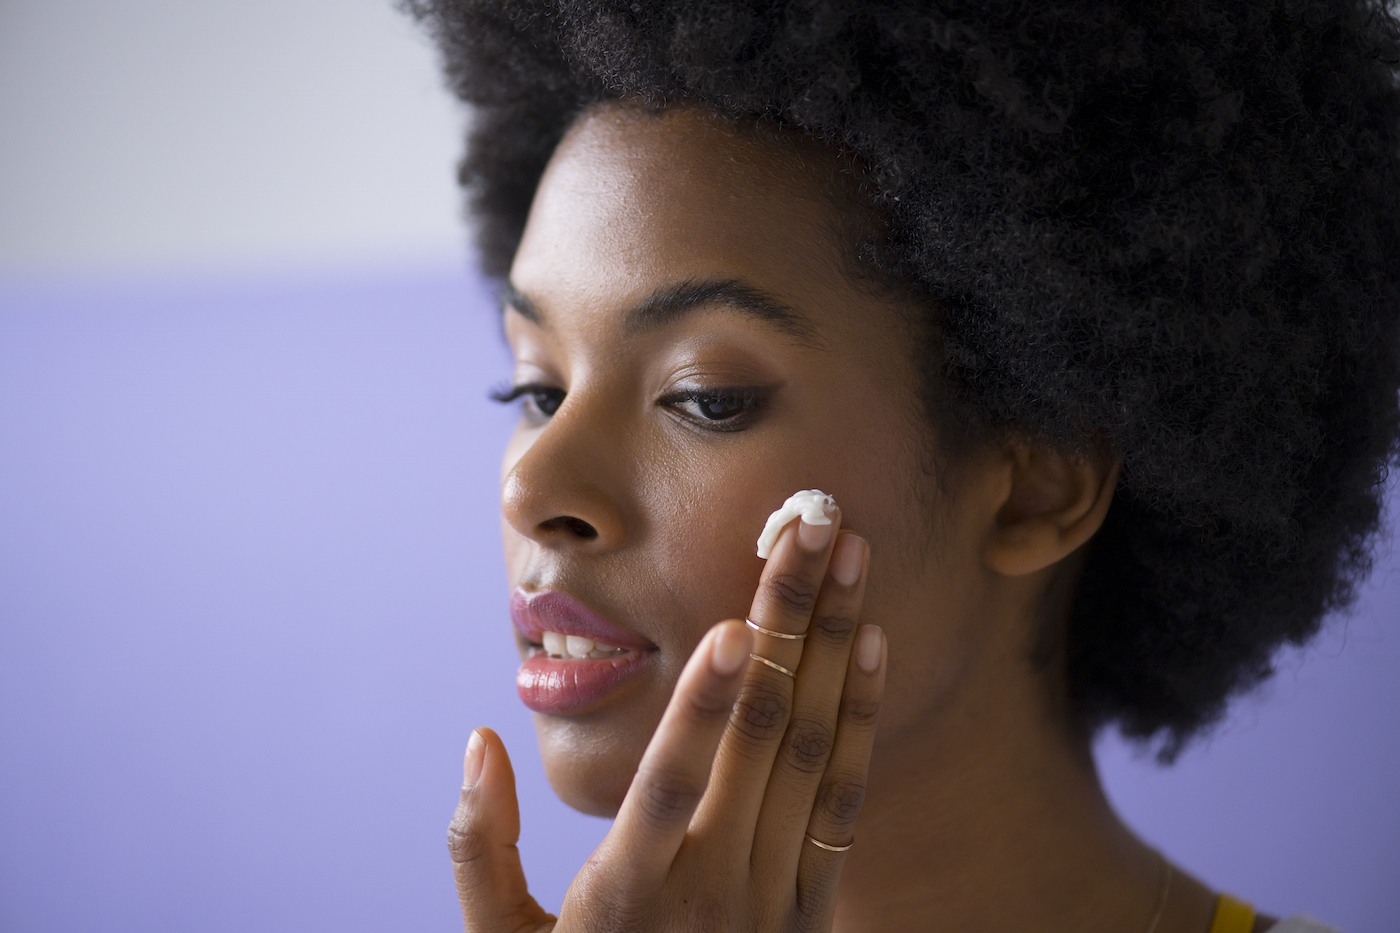 Thumbnail for There's a very good reason why all skin-care pros praise the double cleanse